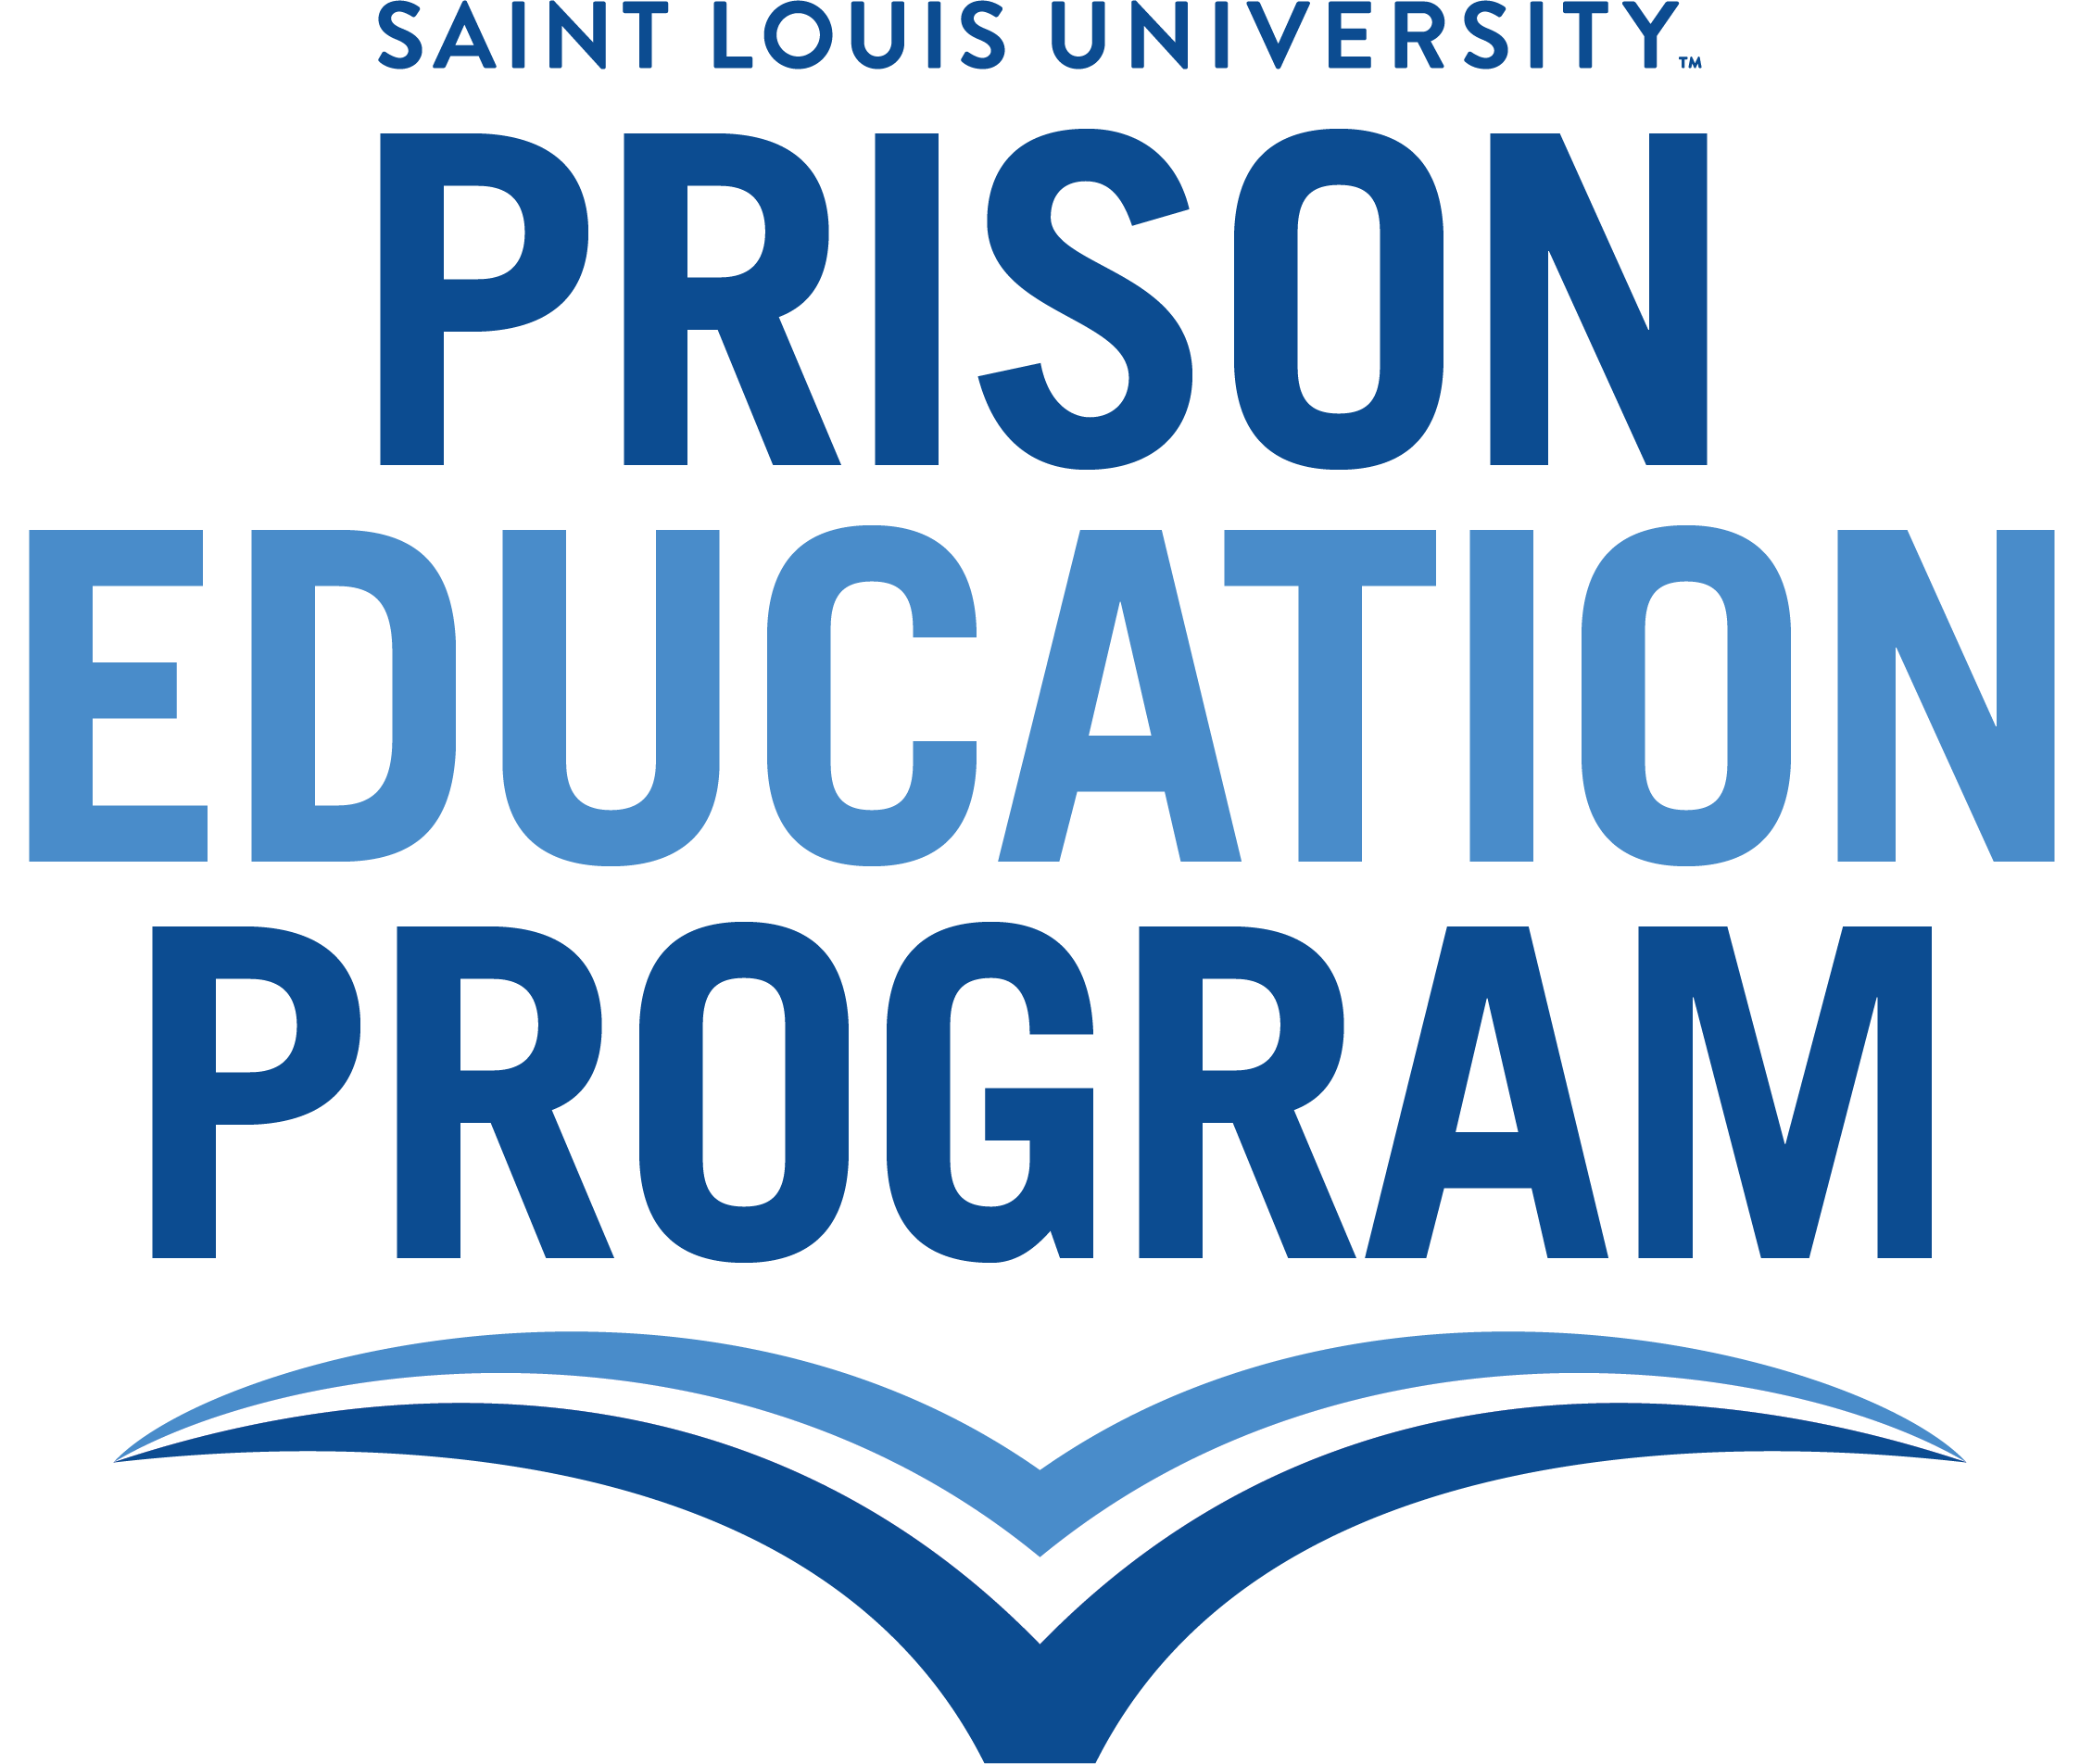 Saint Louis University Prison Education Program